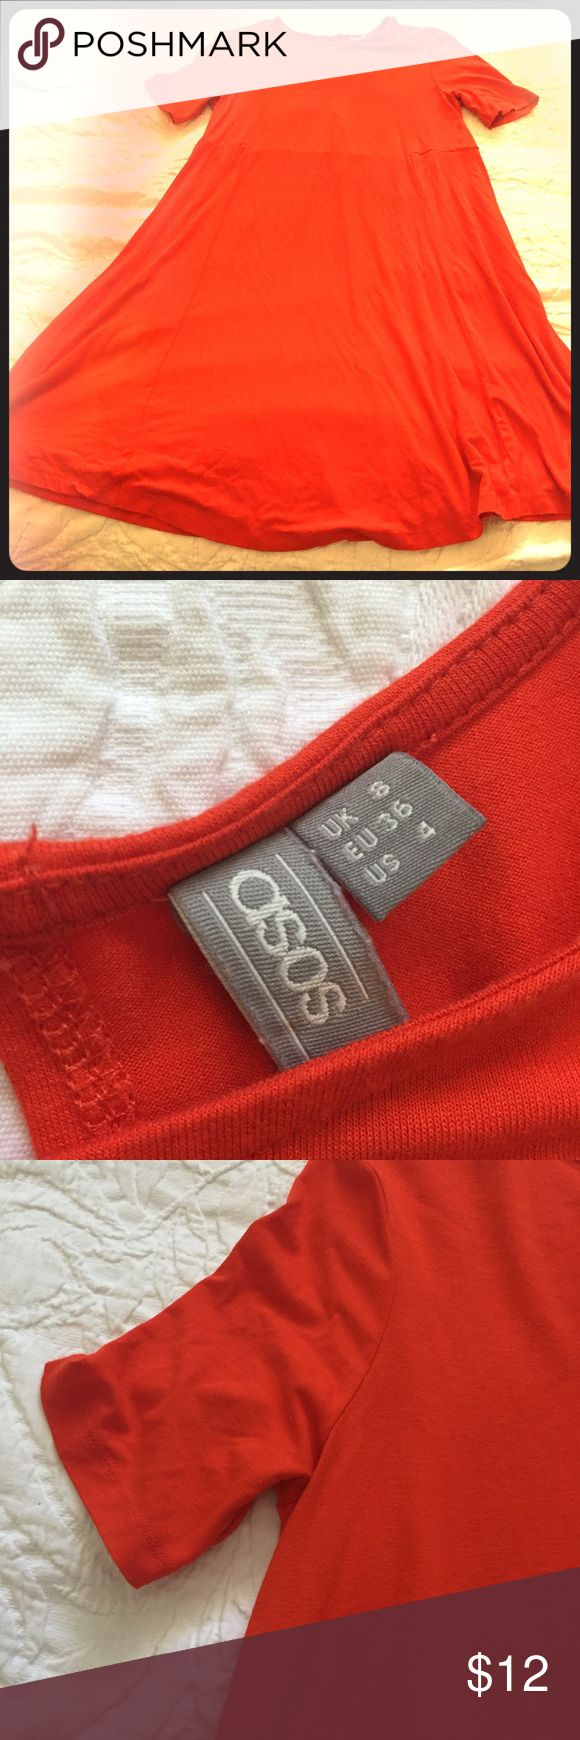 ASOS blood orange maternity dress Very comfy, cute, great color for any time of year! ASOS Dresses Midi